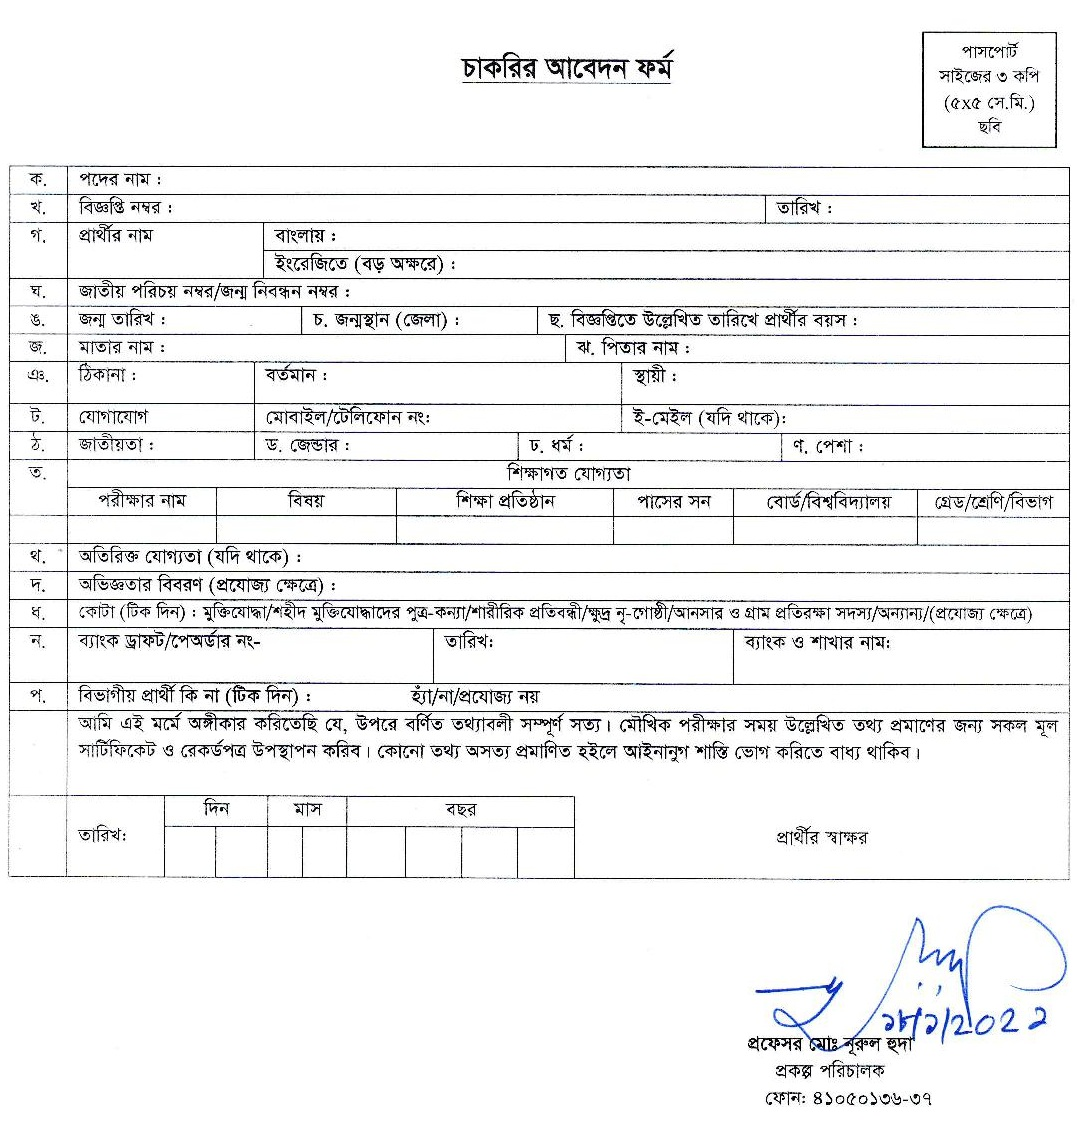 SHED Application Form